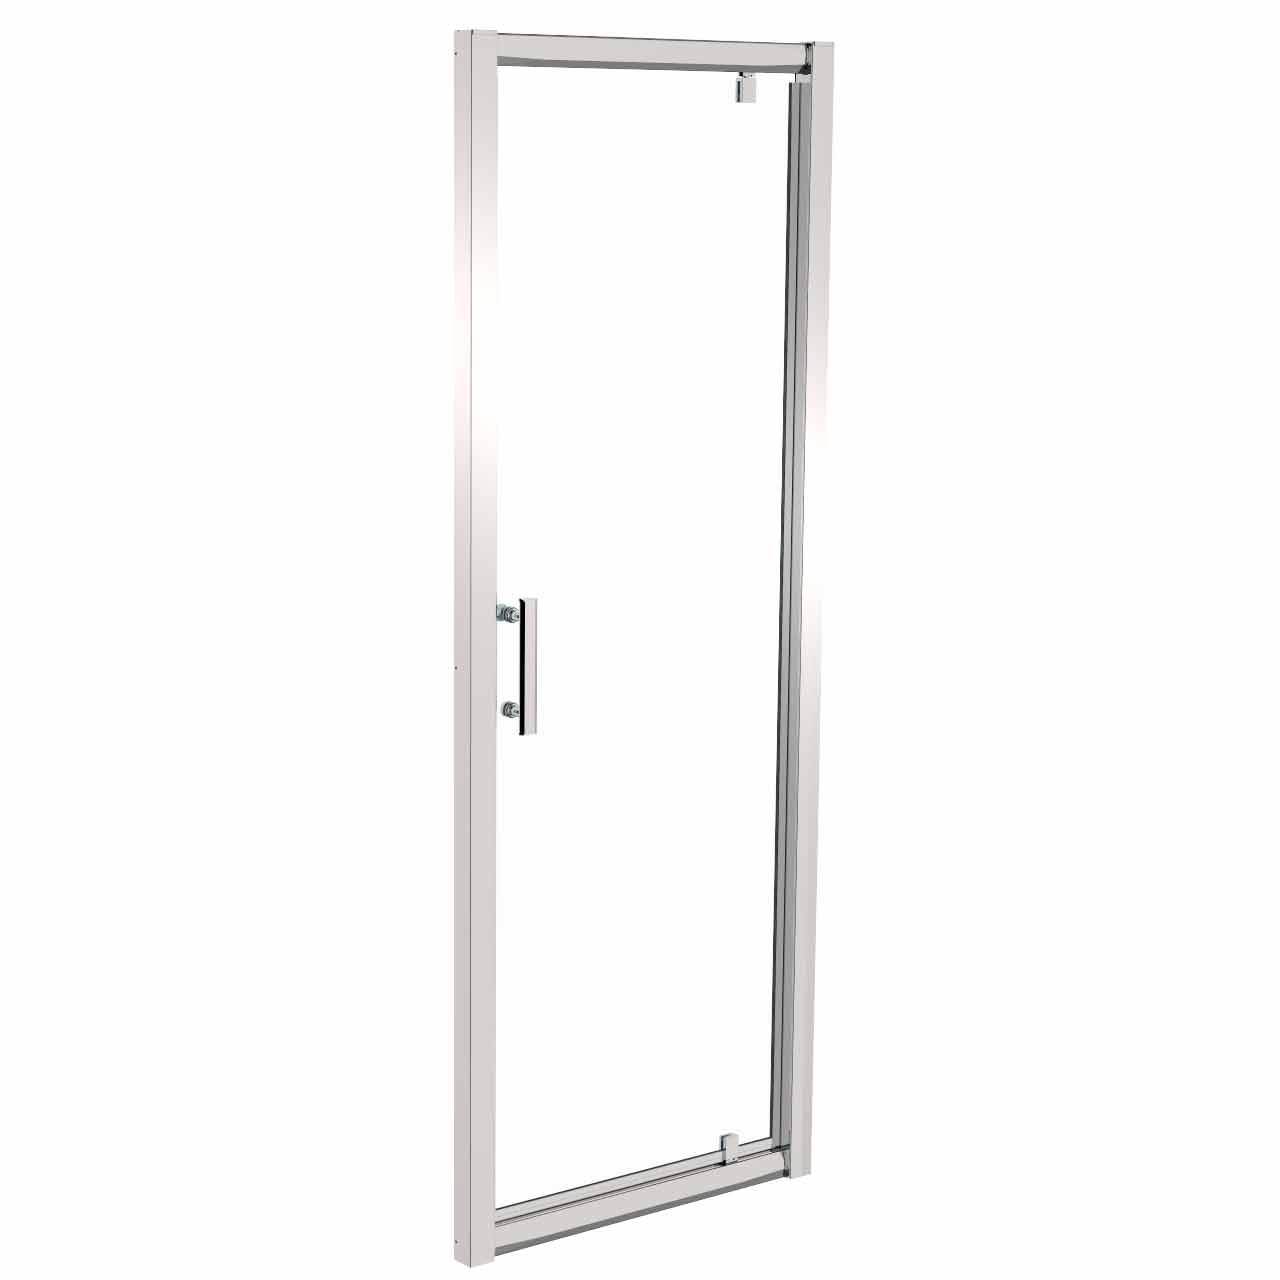 Series 6 700 x 700 Pivot Door Enclosure